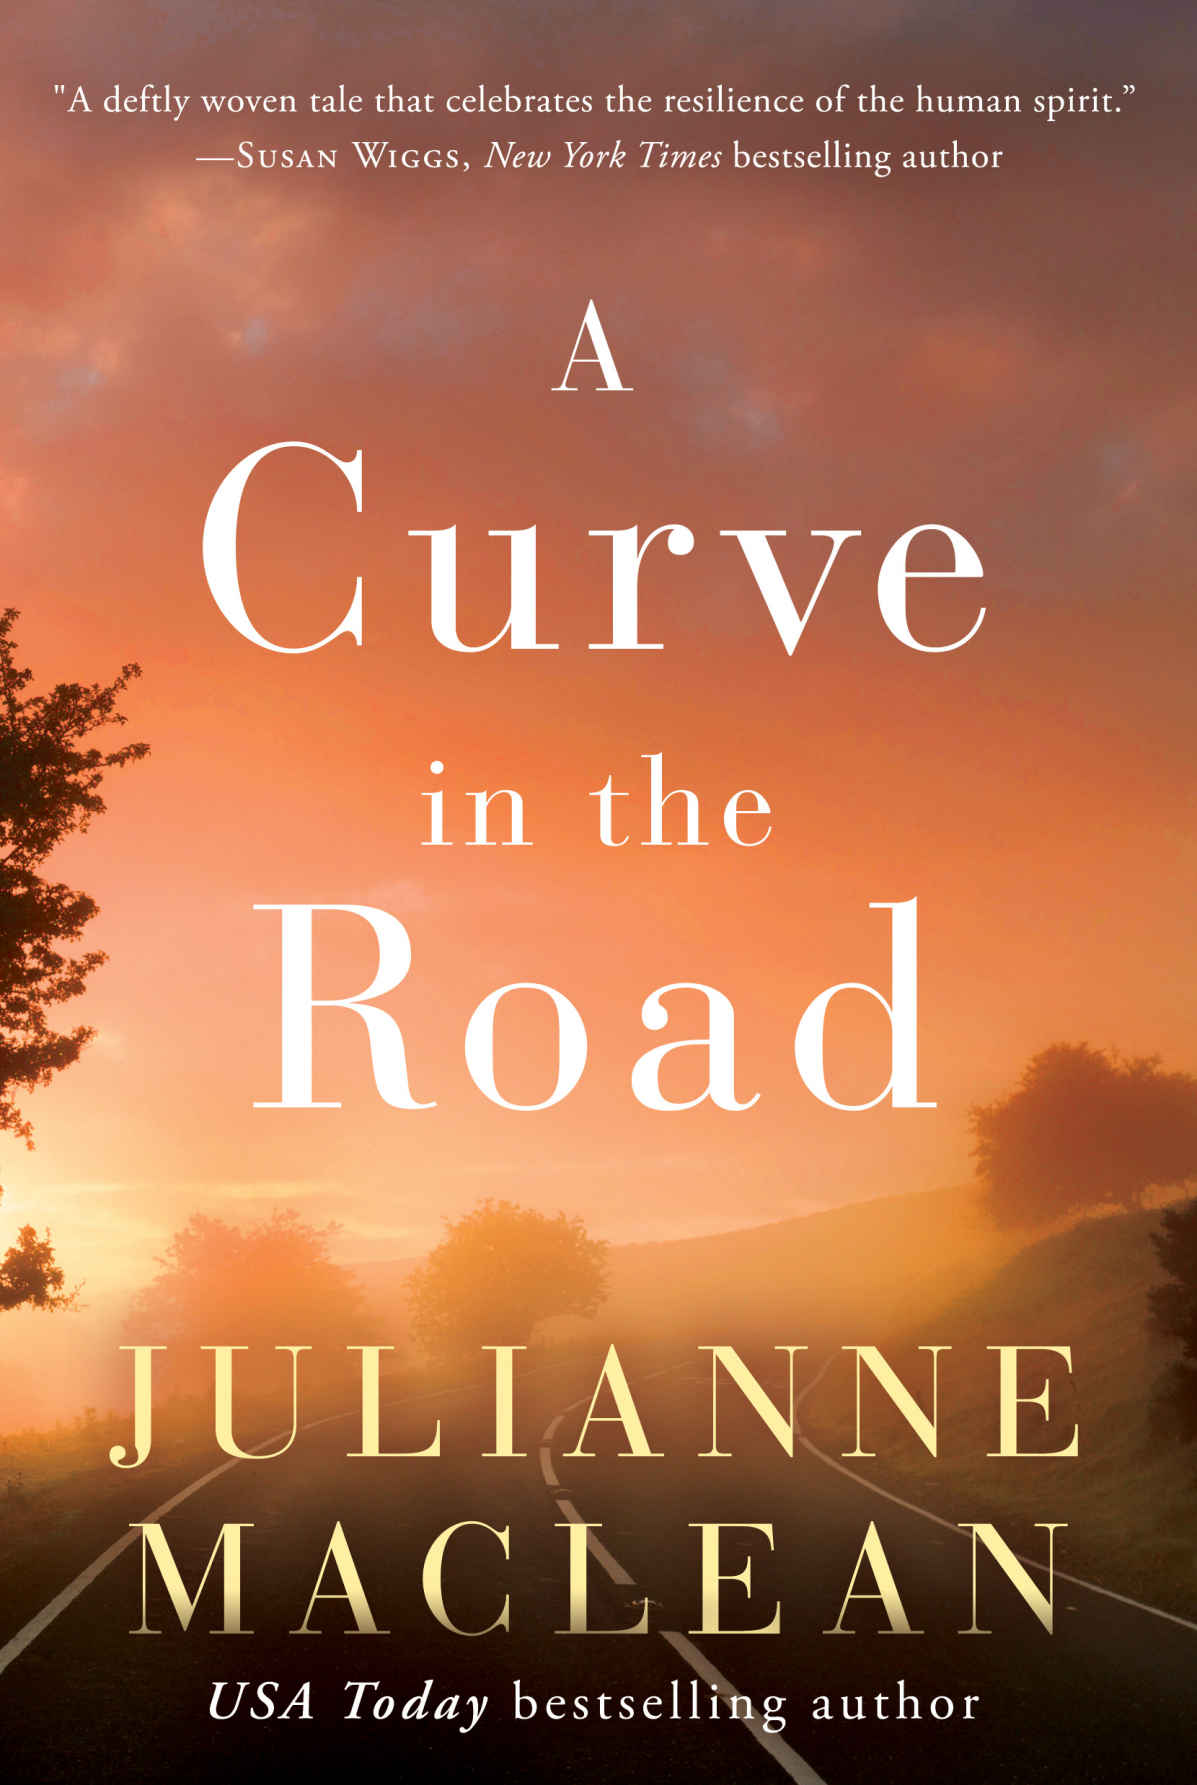 A Curve in the Road - Julianne MacLean [kindle] [mobi]